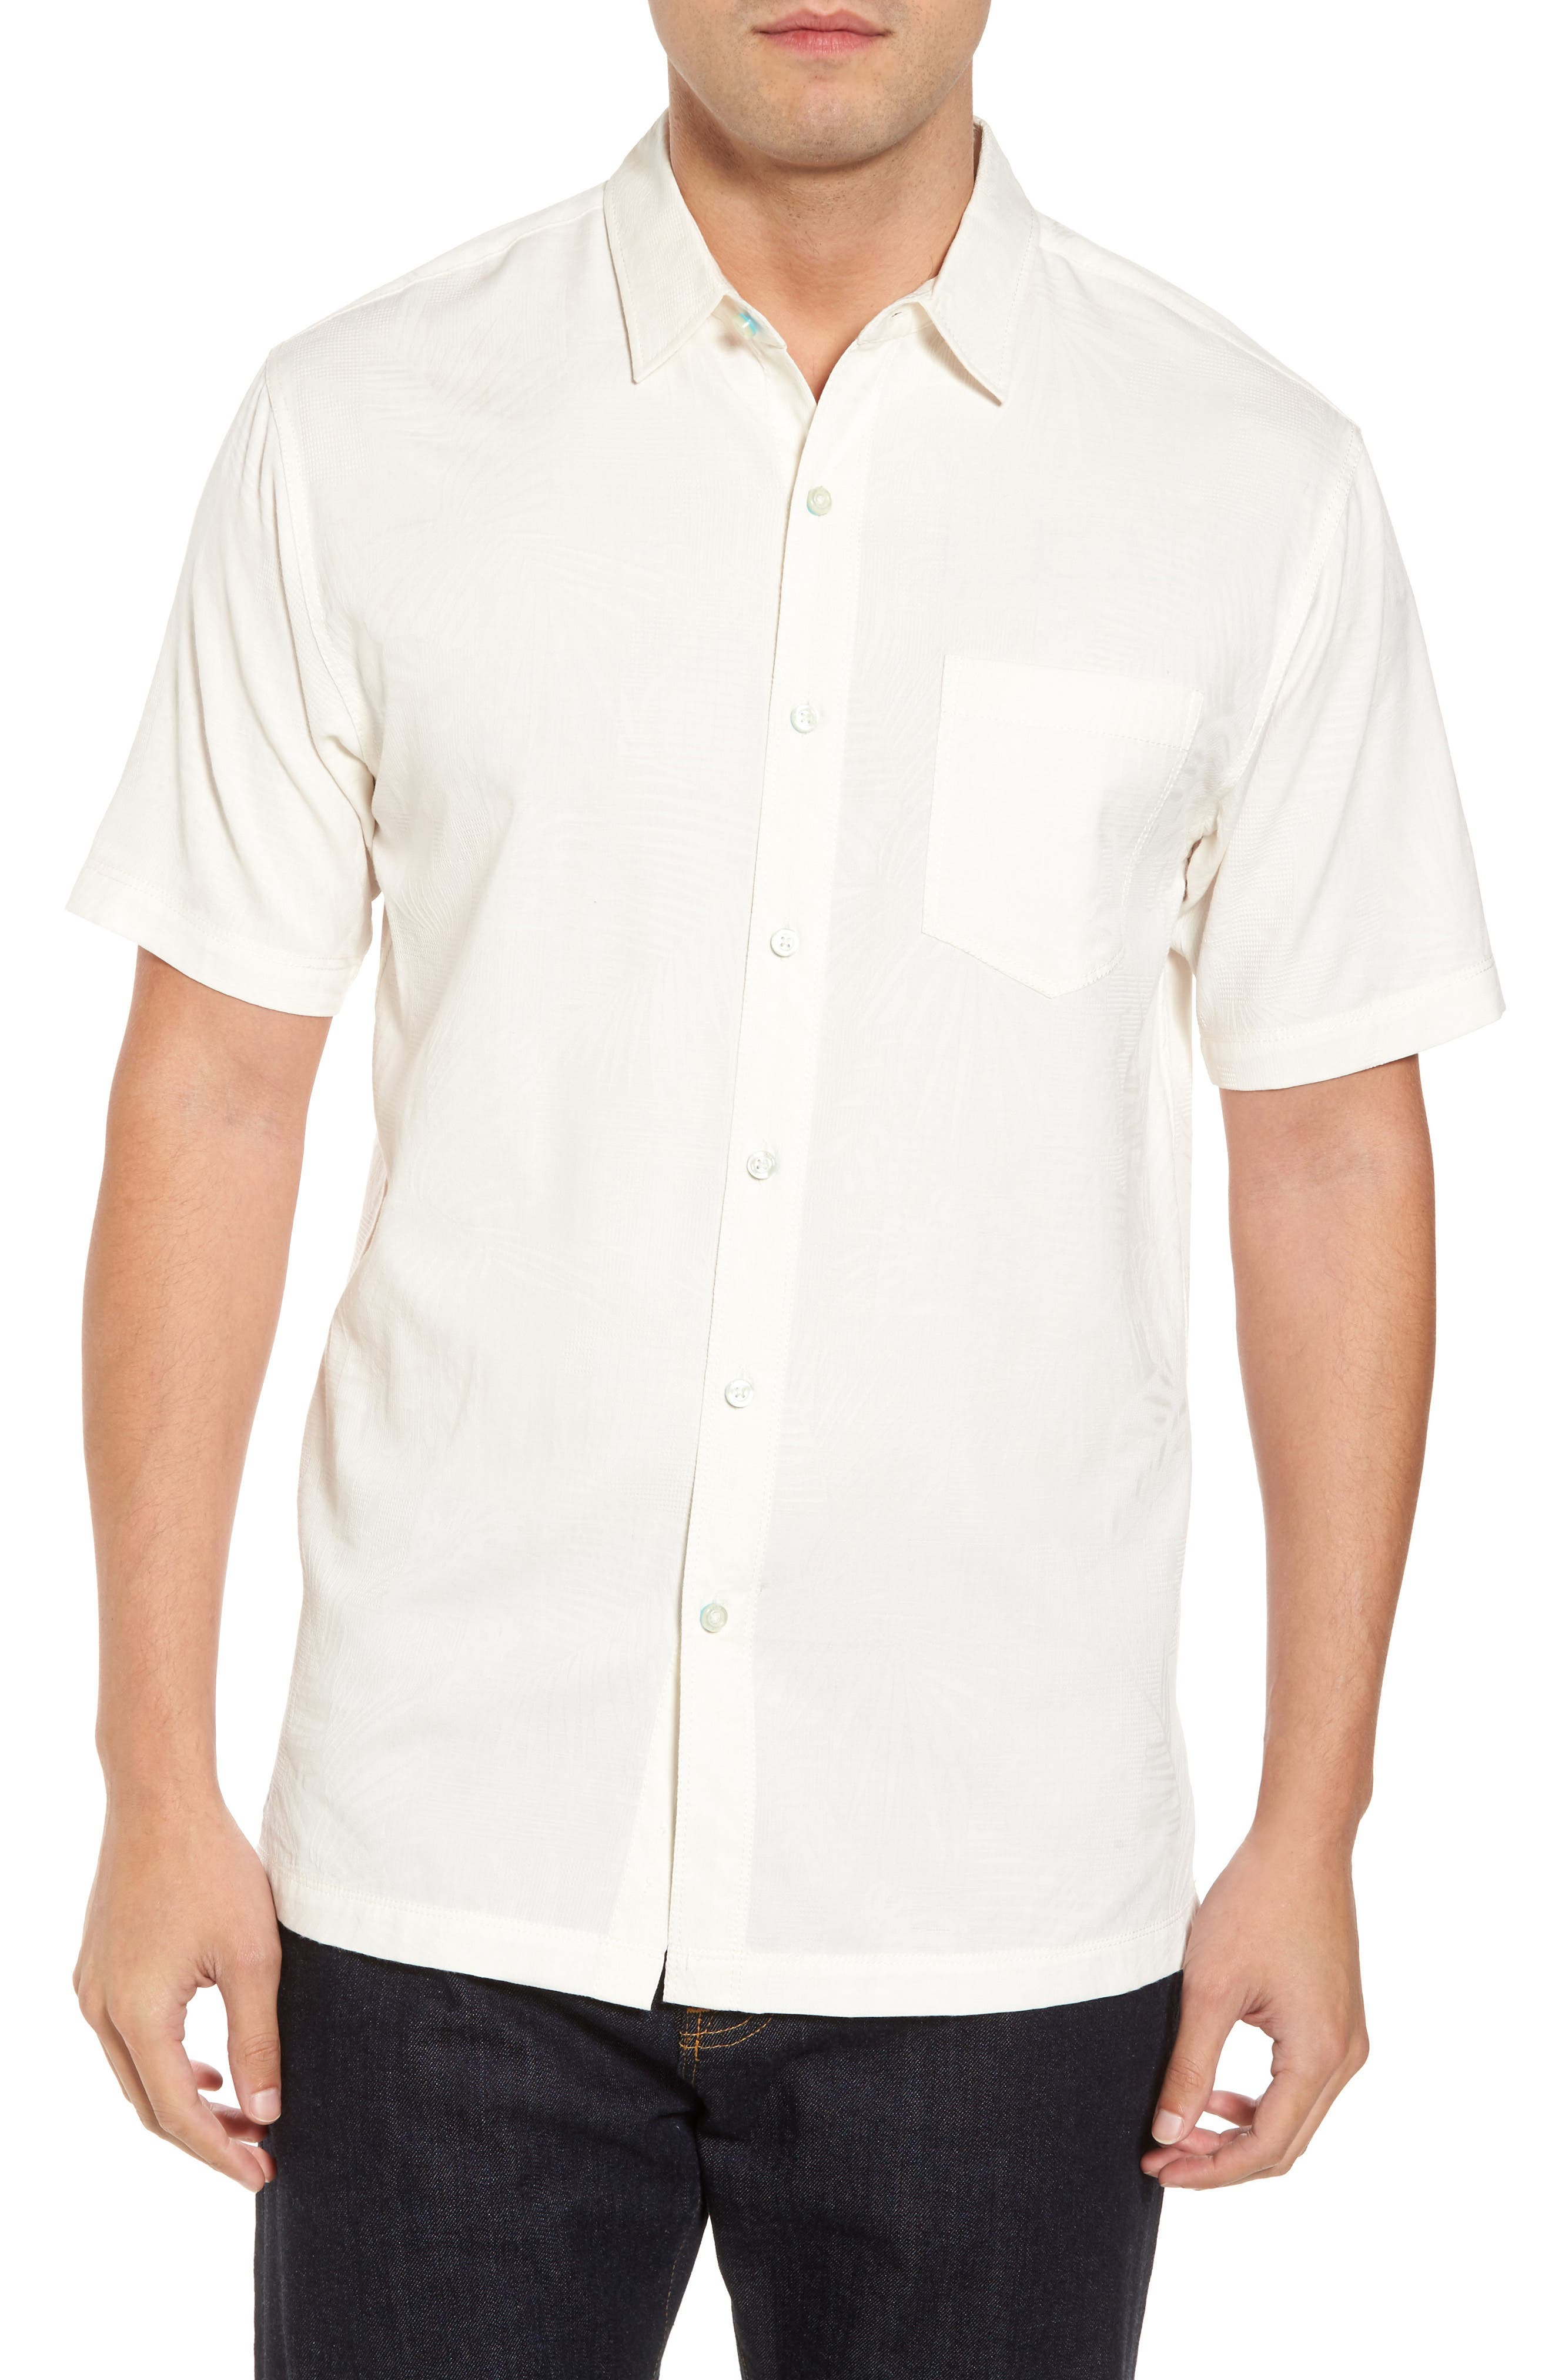 Milagro Classic Fit Sport Shirt,                         Main,                         color,